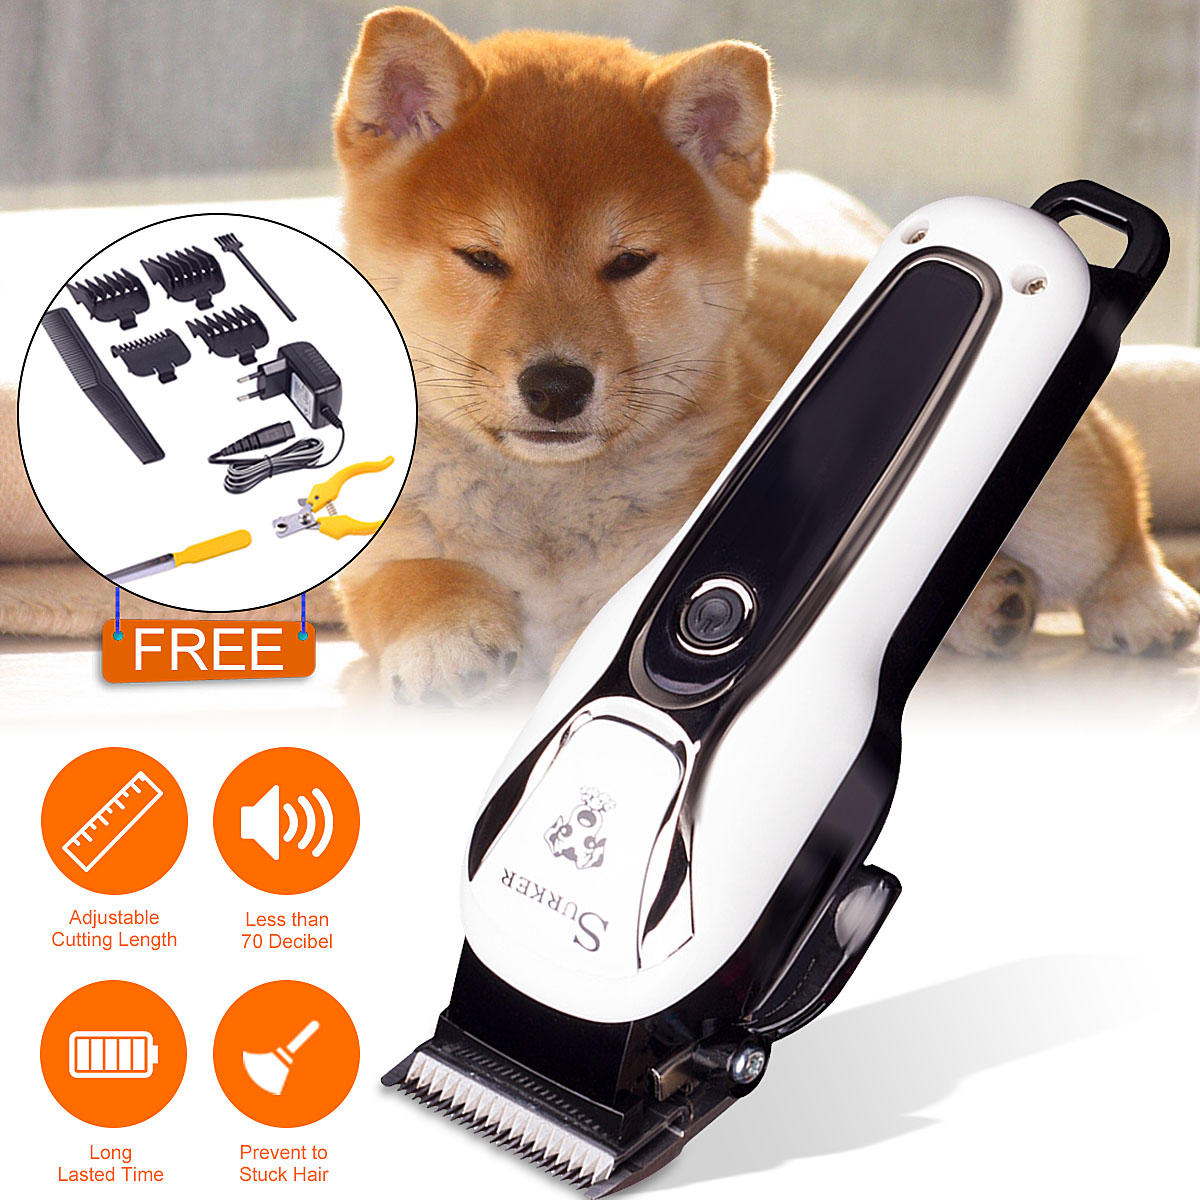 Pet Clipper Rechargeable Pet Cat Dog Electric Trimmer Hair Cutter Shaver Grooming Tool Kit